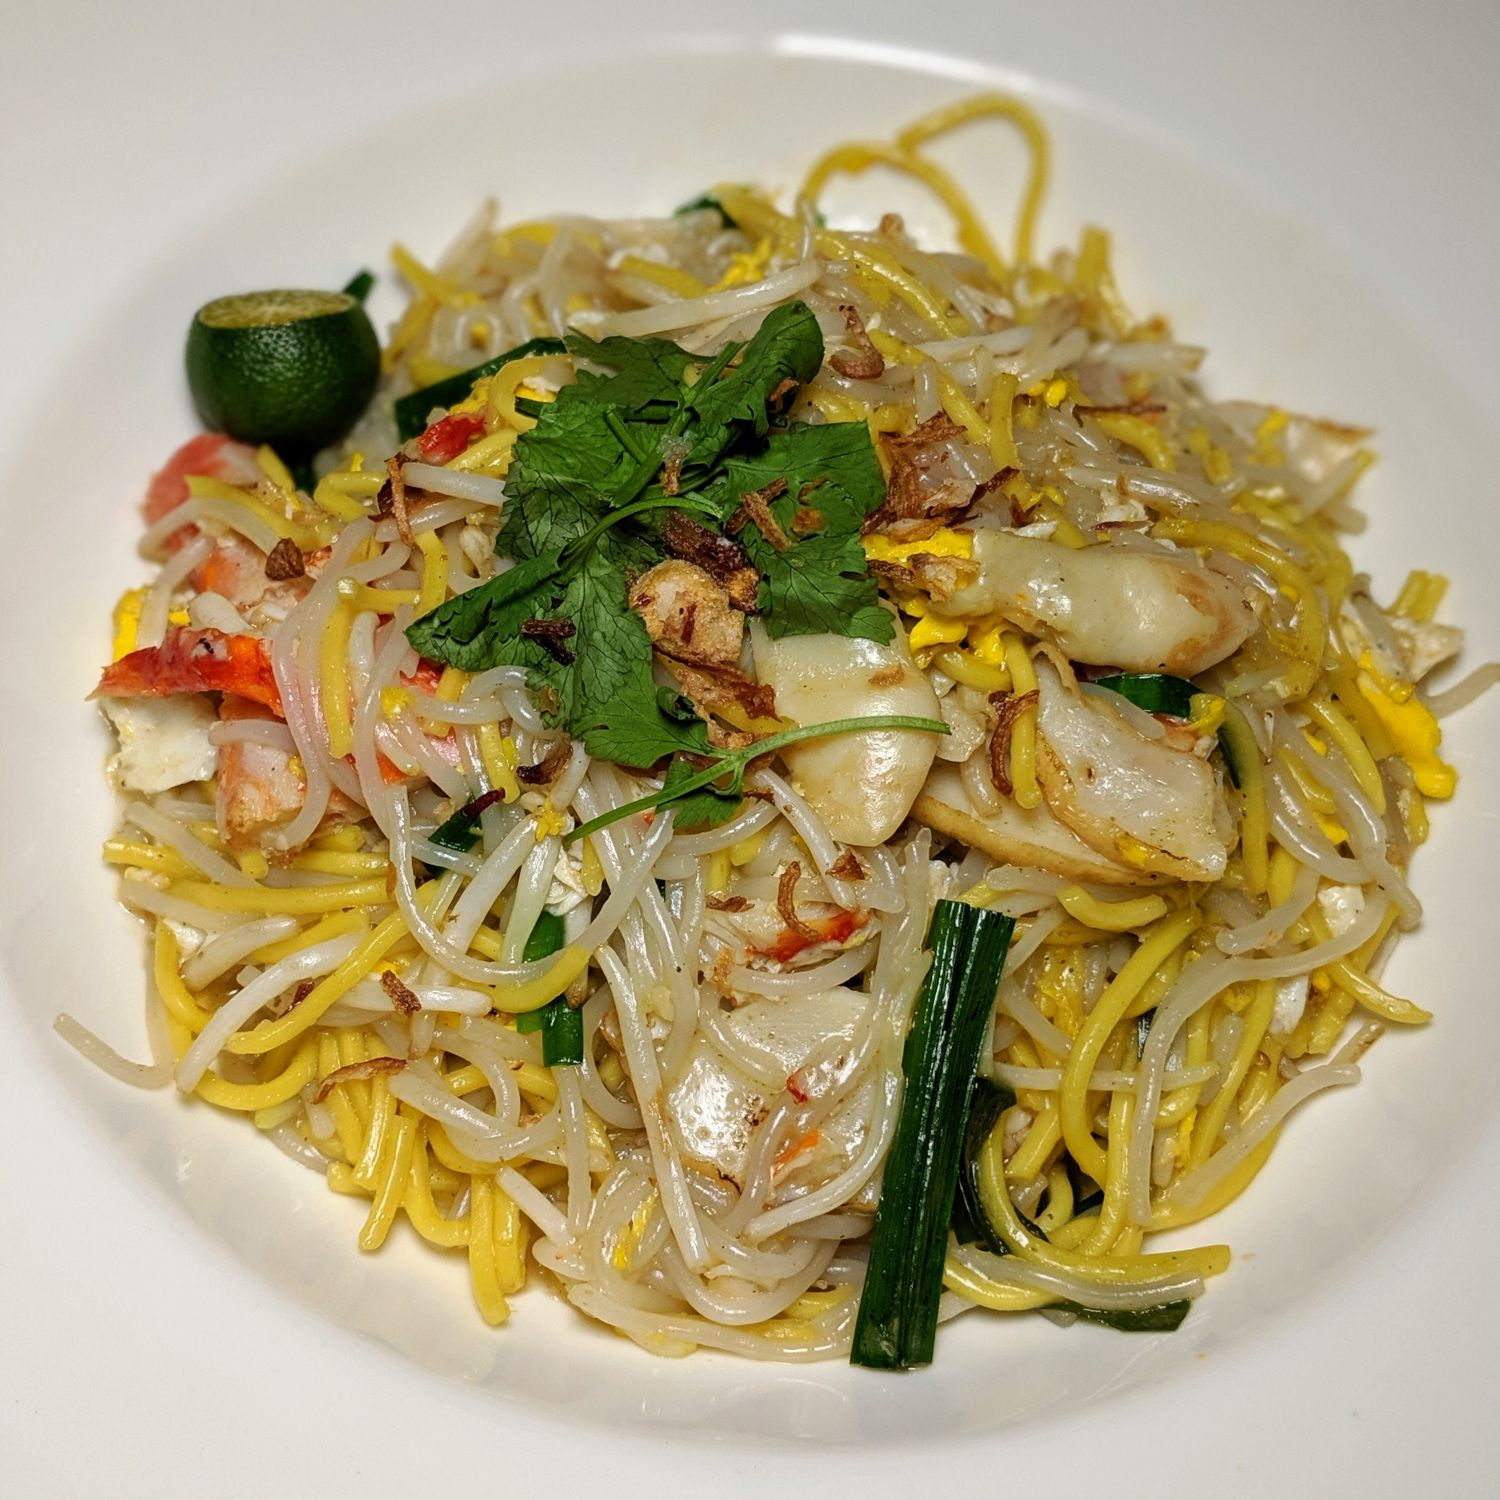 mandarin oriental singapore in-room all day dining menu Alaskan King Crab Hokkien Mee